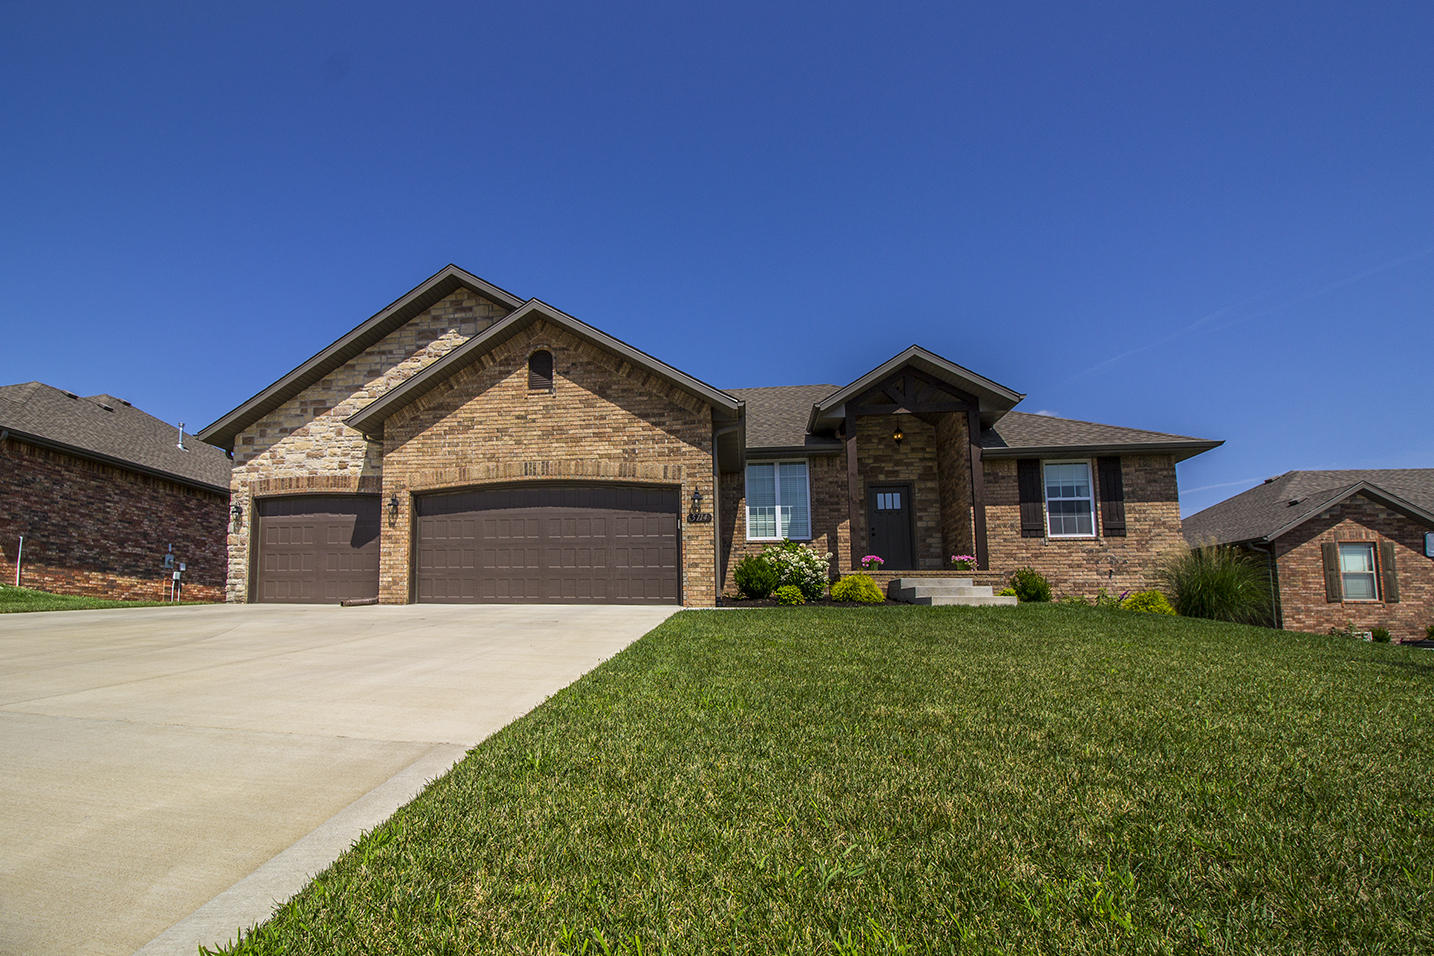 5714 South Cottonwood Drive Battlefield, MO 65619